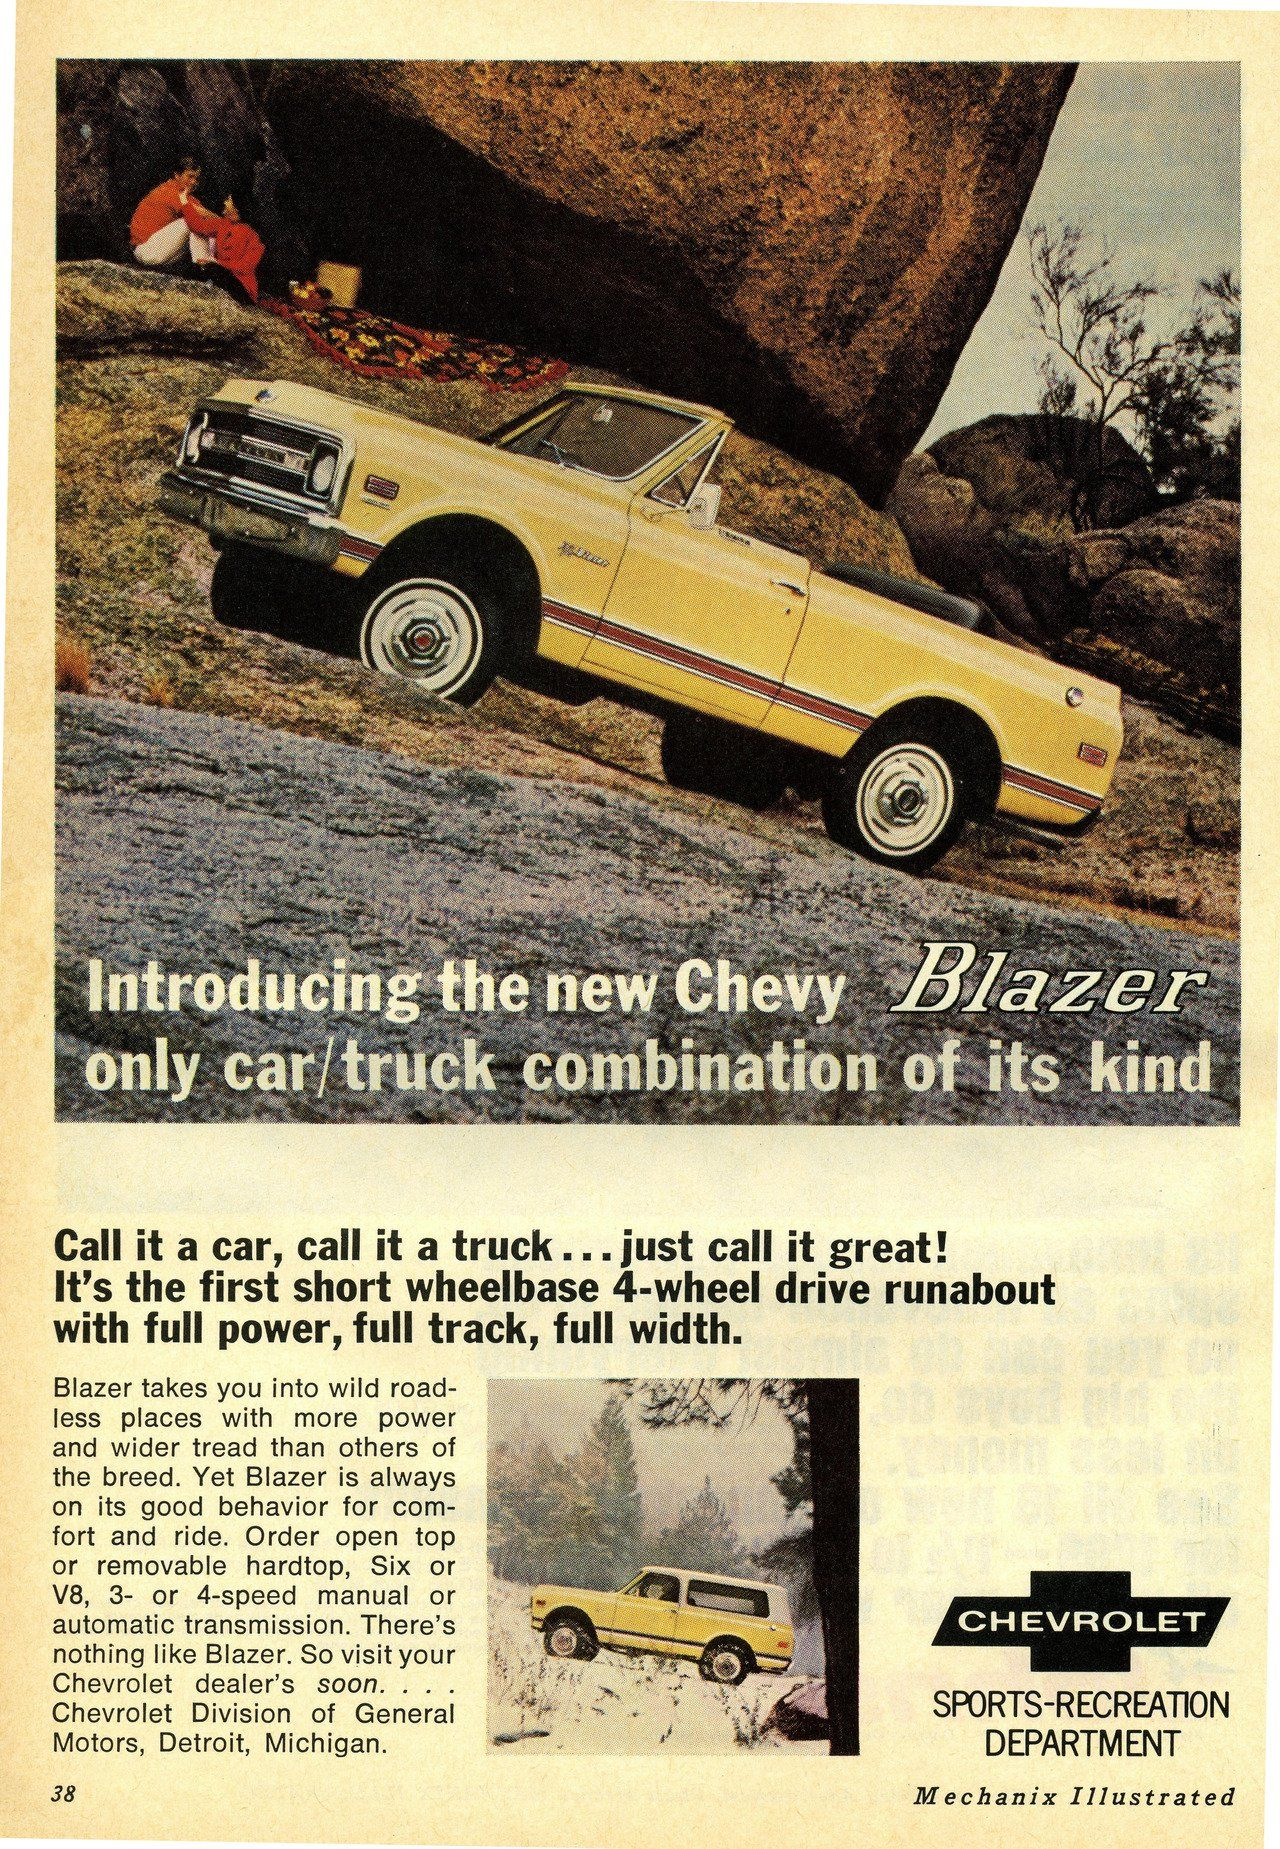 1969 Chevrolet Blazer Ad Gm Trucks Chevy Trucks Classic Trucks